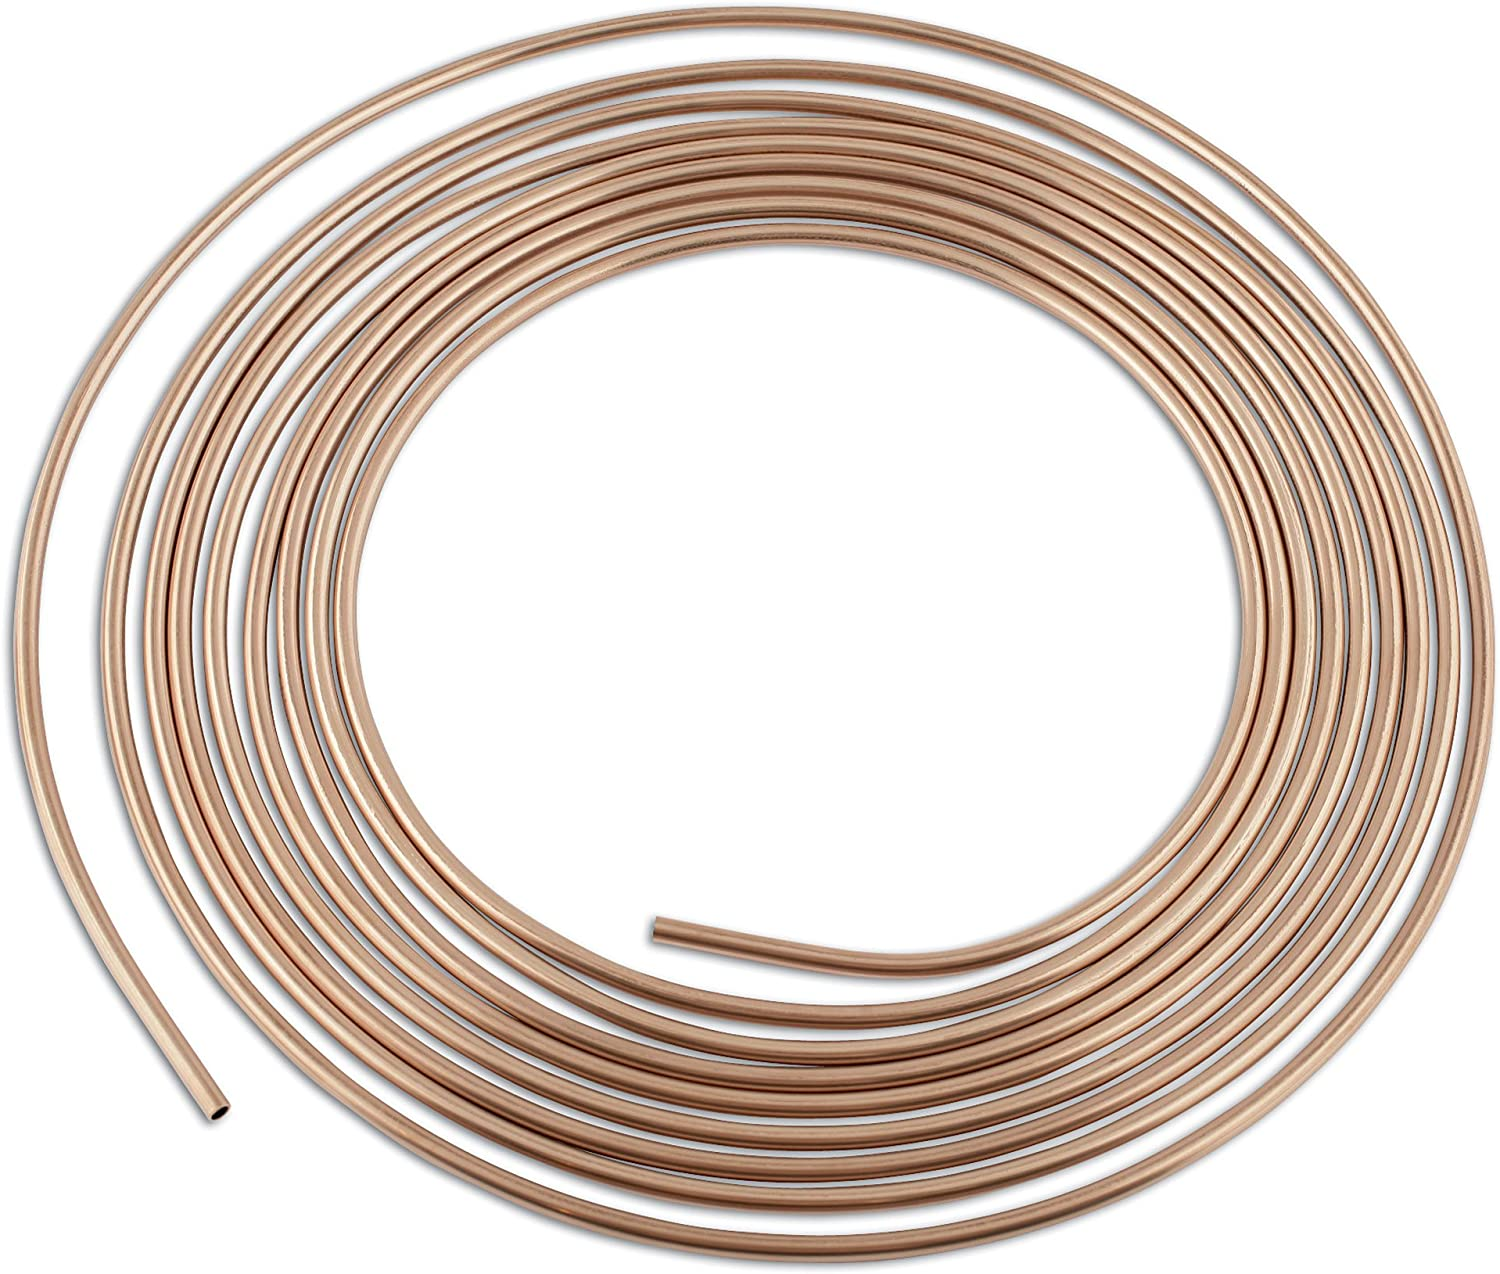 Connect 31131 1//4-inch x 25ft Cupro Nickel Pipe